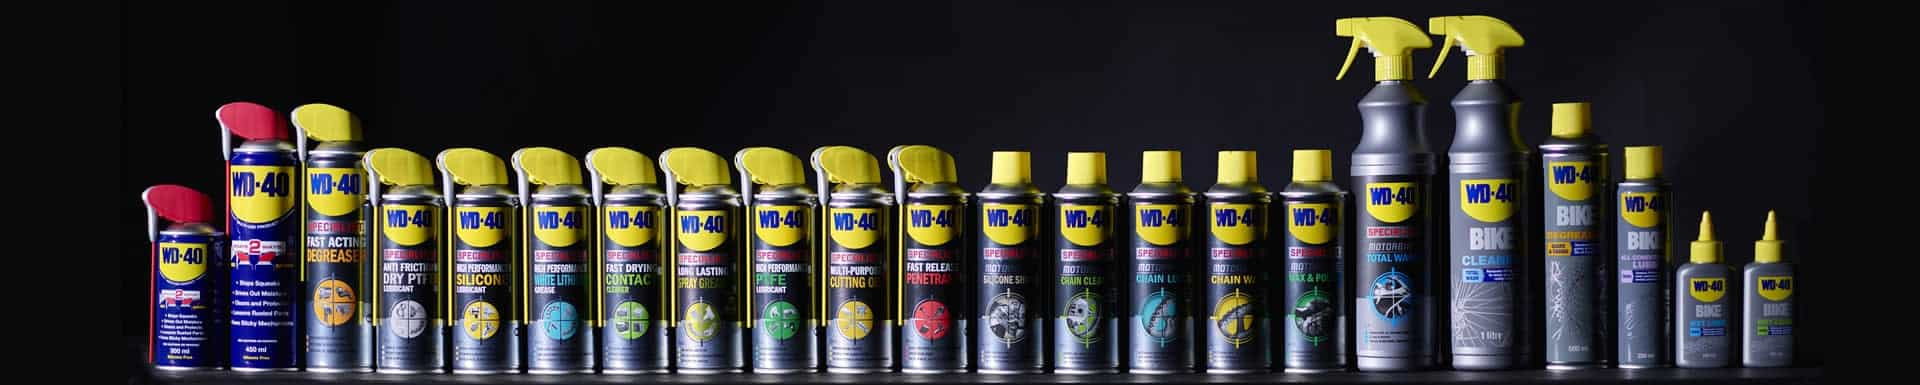 wd 40 product range header